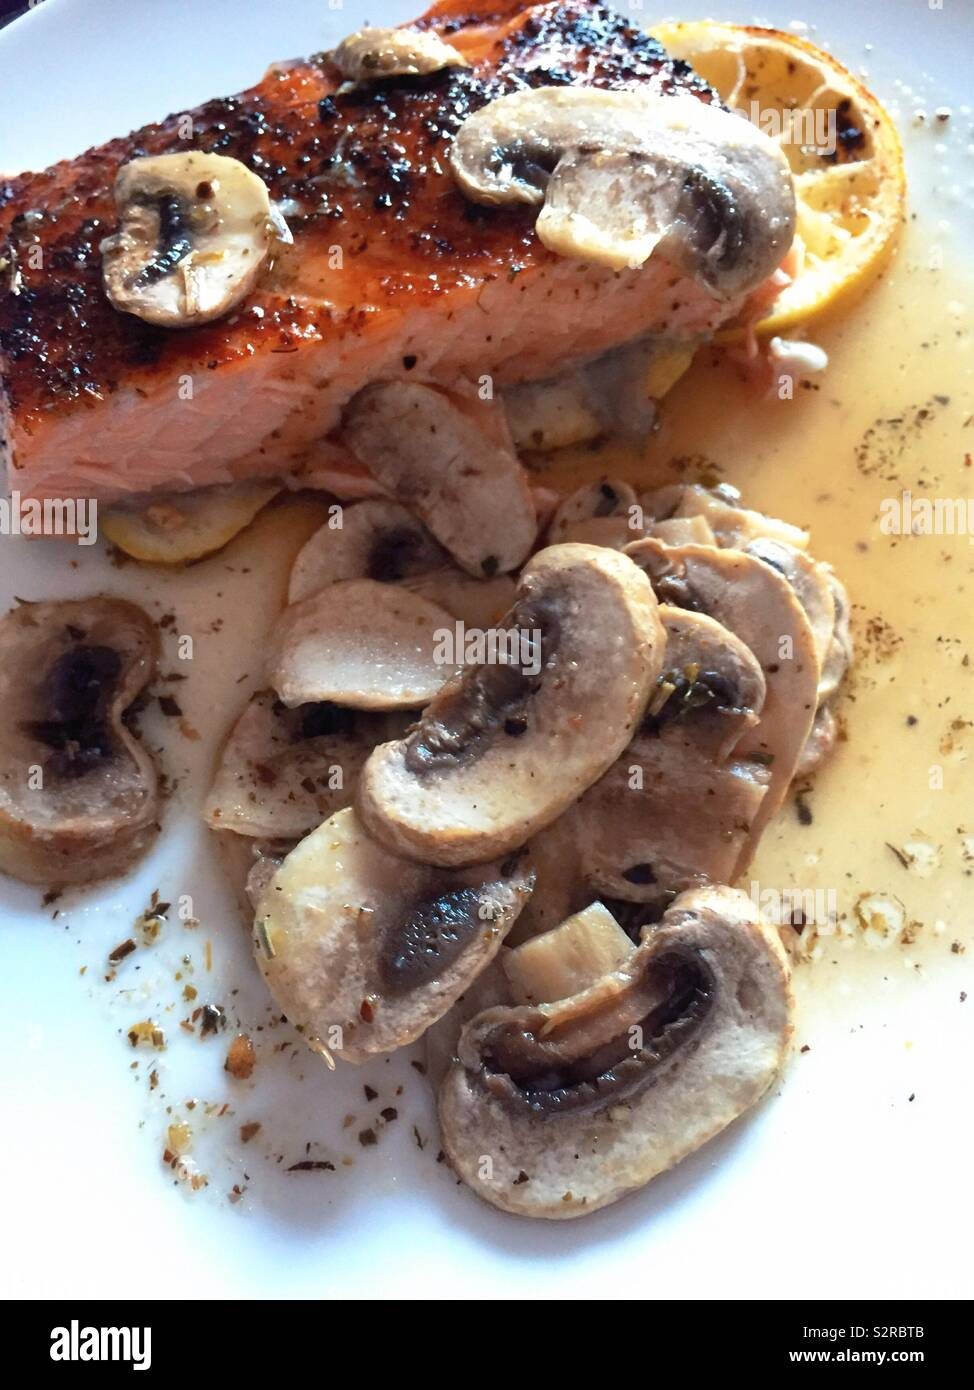 Gourmet entrée of broiled salmon fillet on a bed of lemon slices with fresh mushroom sauce, USA - Stock Image